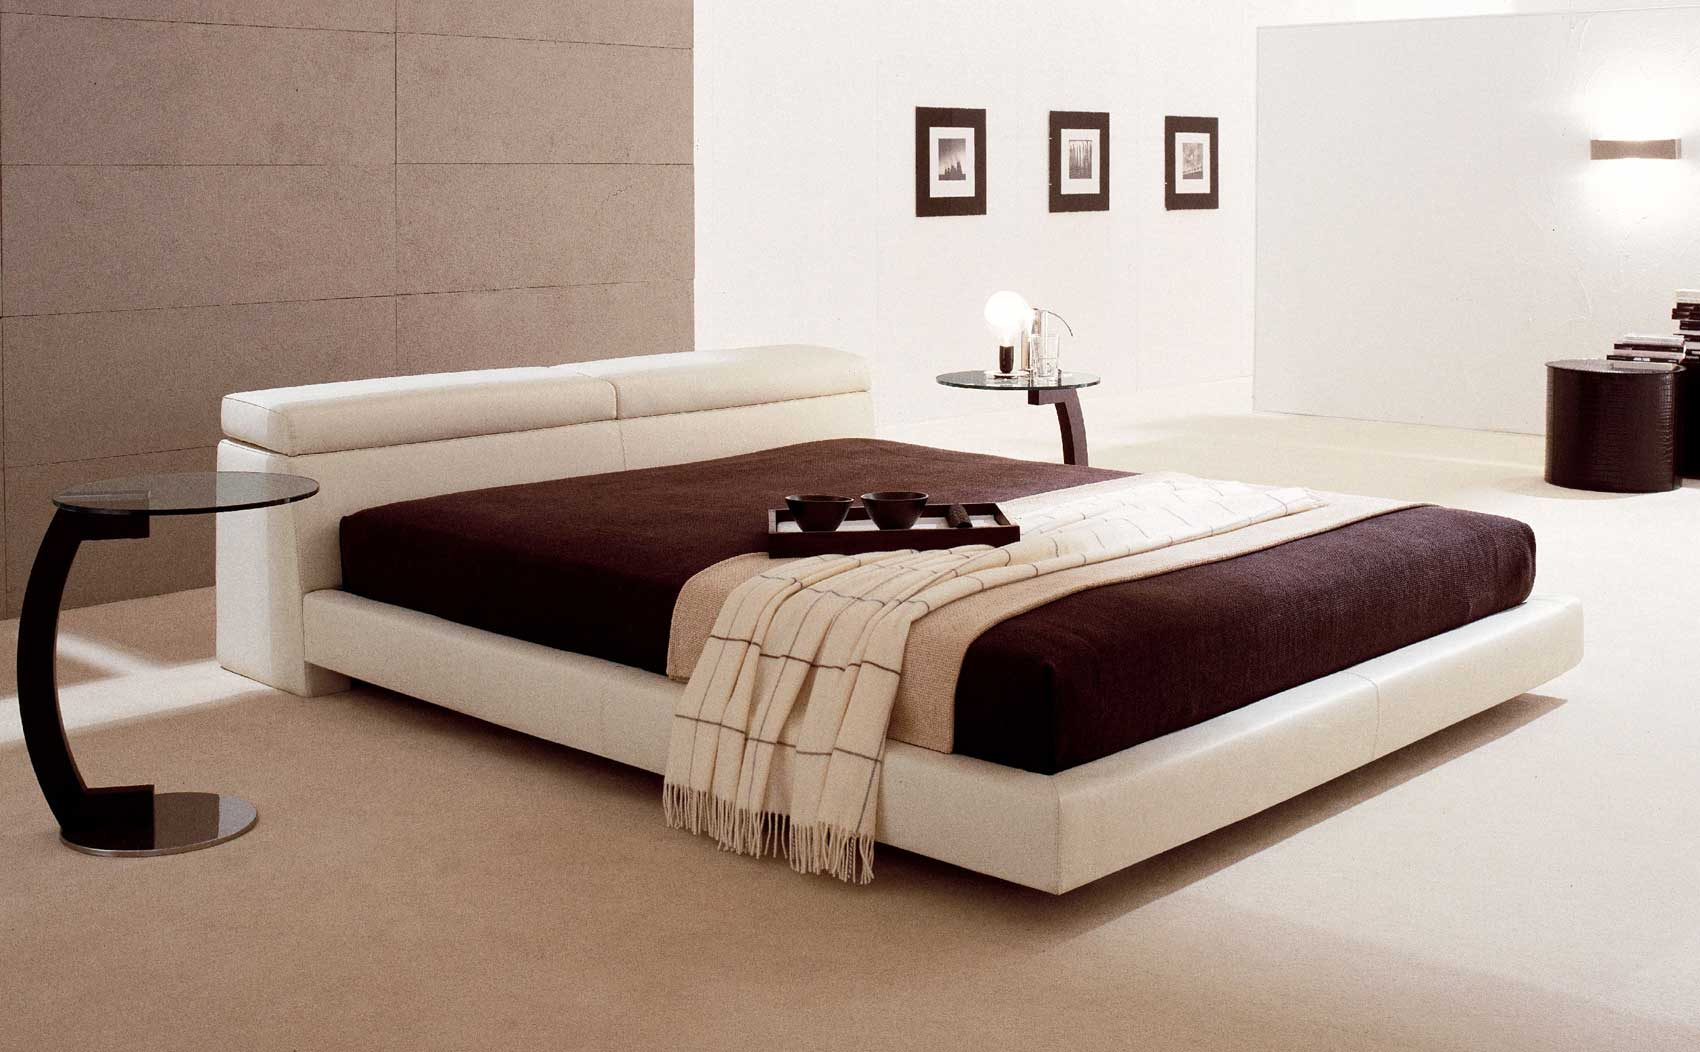 creative-master-bedroom-design-furniture-designs.jpg